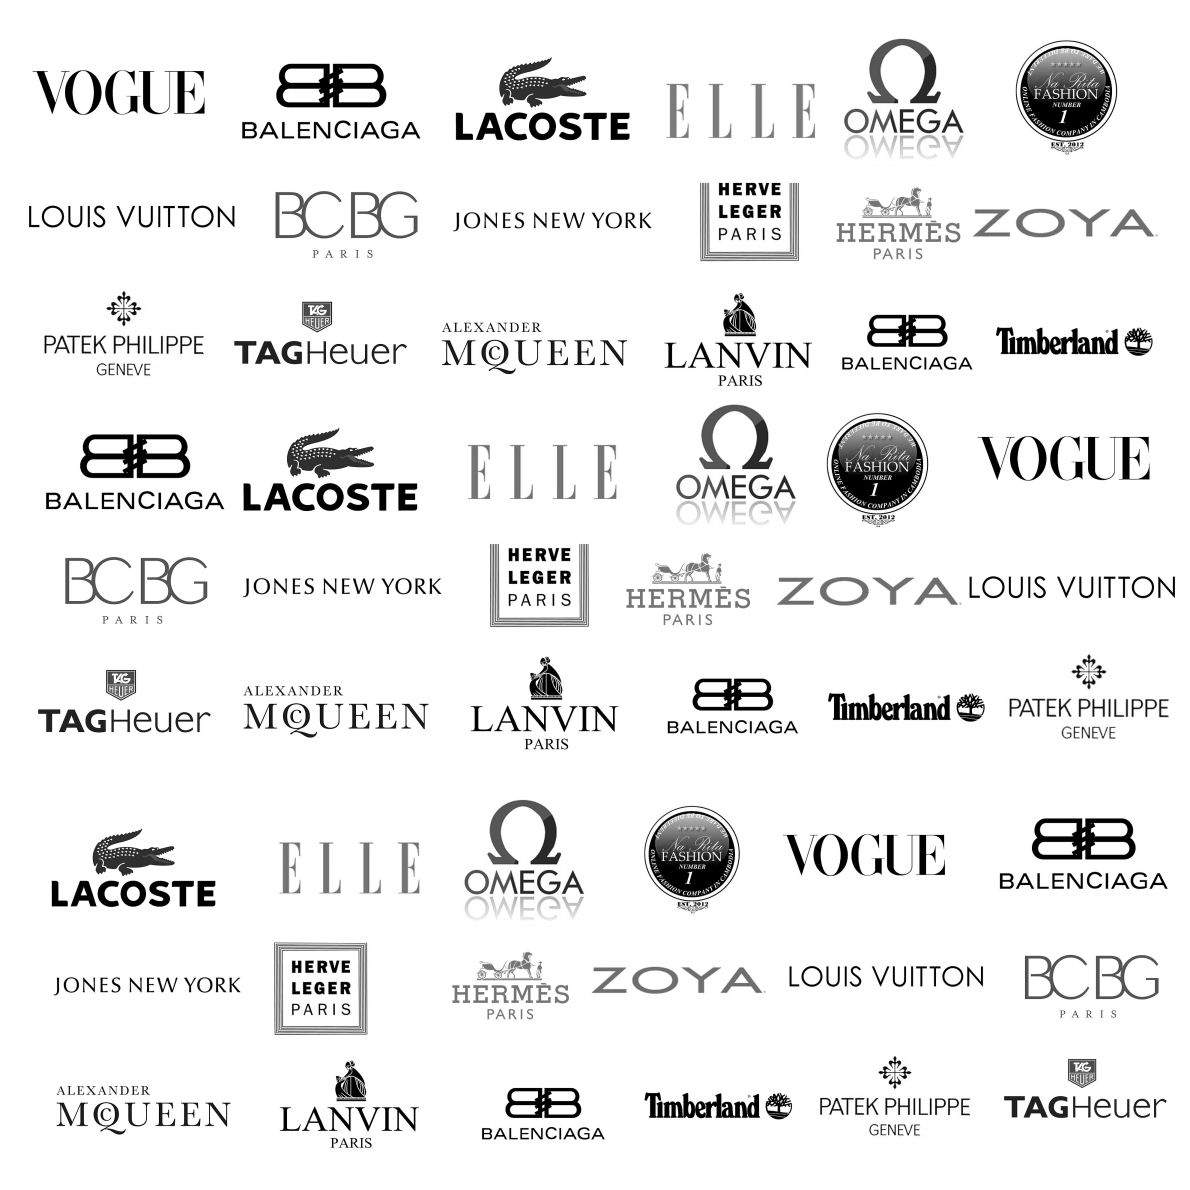 You Verify We Re Getting A Face Lift Best Clothing Brand Logos Latest Trend Fashion Famous